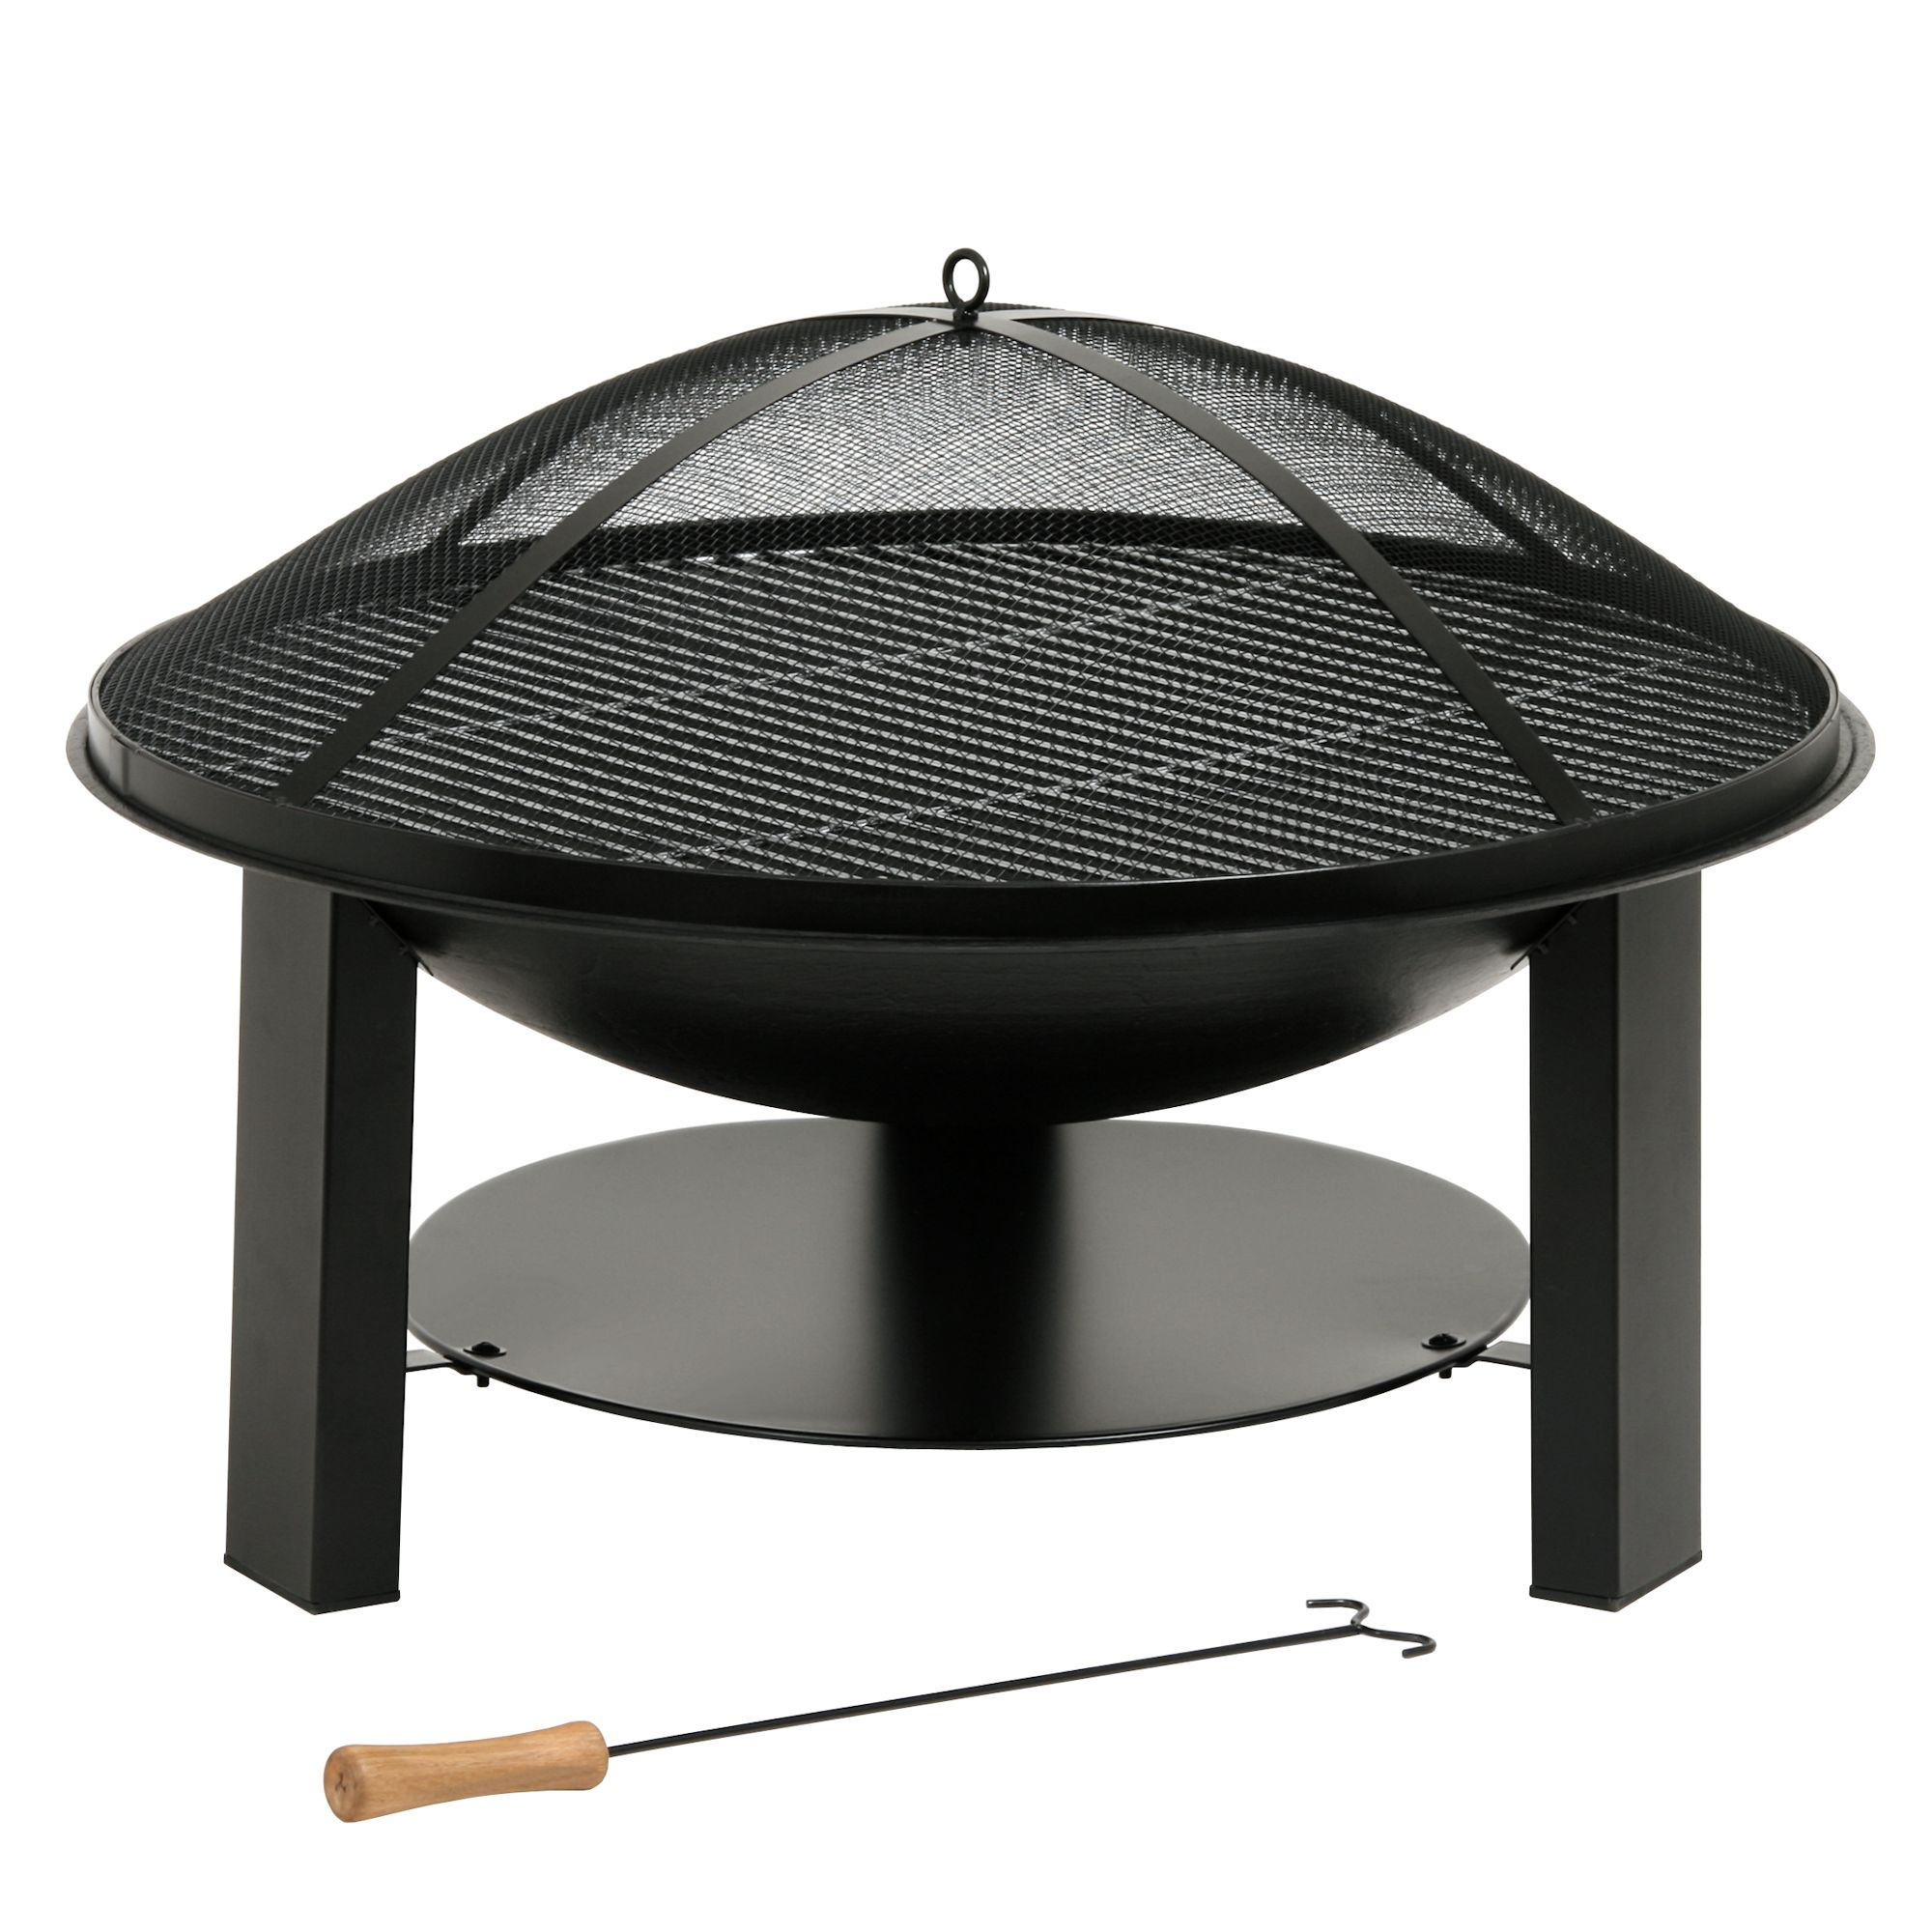 feuerschale terrassenofen grill gartenfeuer aus gusseisen 75 cm ebay. Black Bedroom Furniture Sets. Home Design Ideas